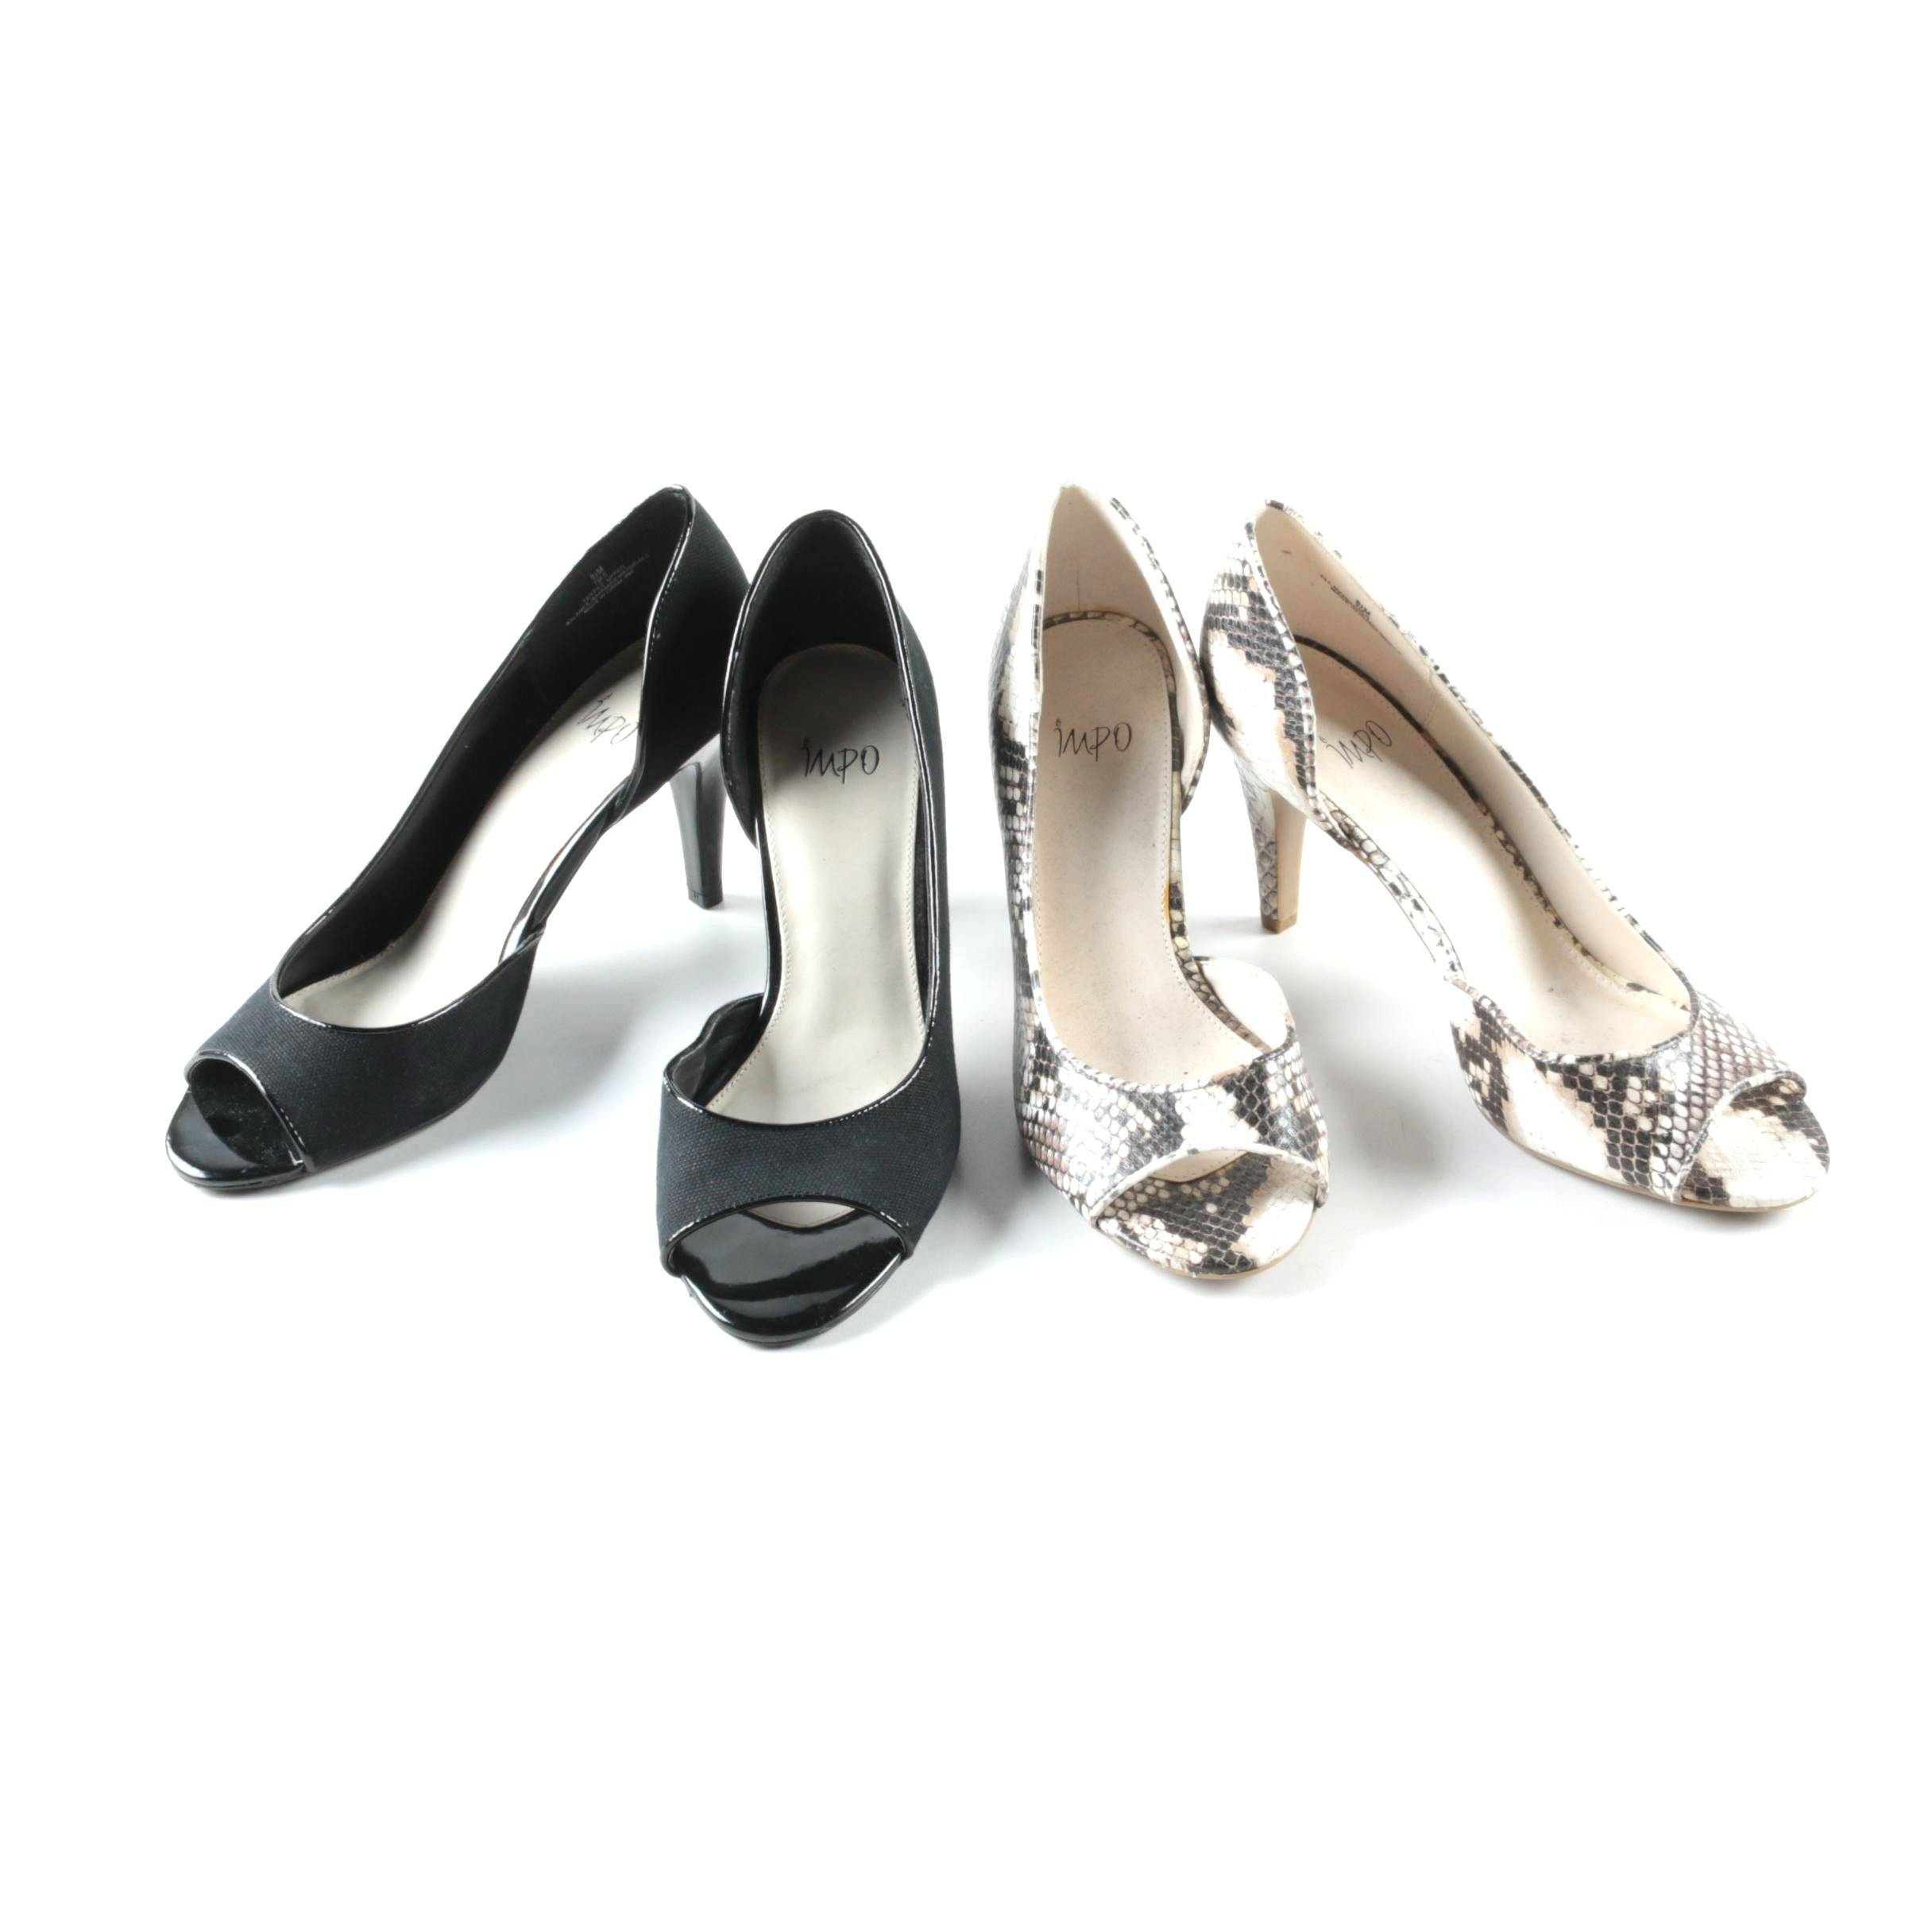 Impo Black and Faux Snakeskin Heels